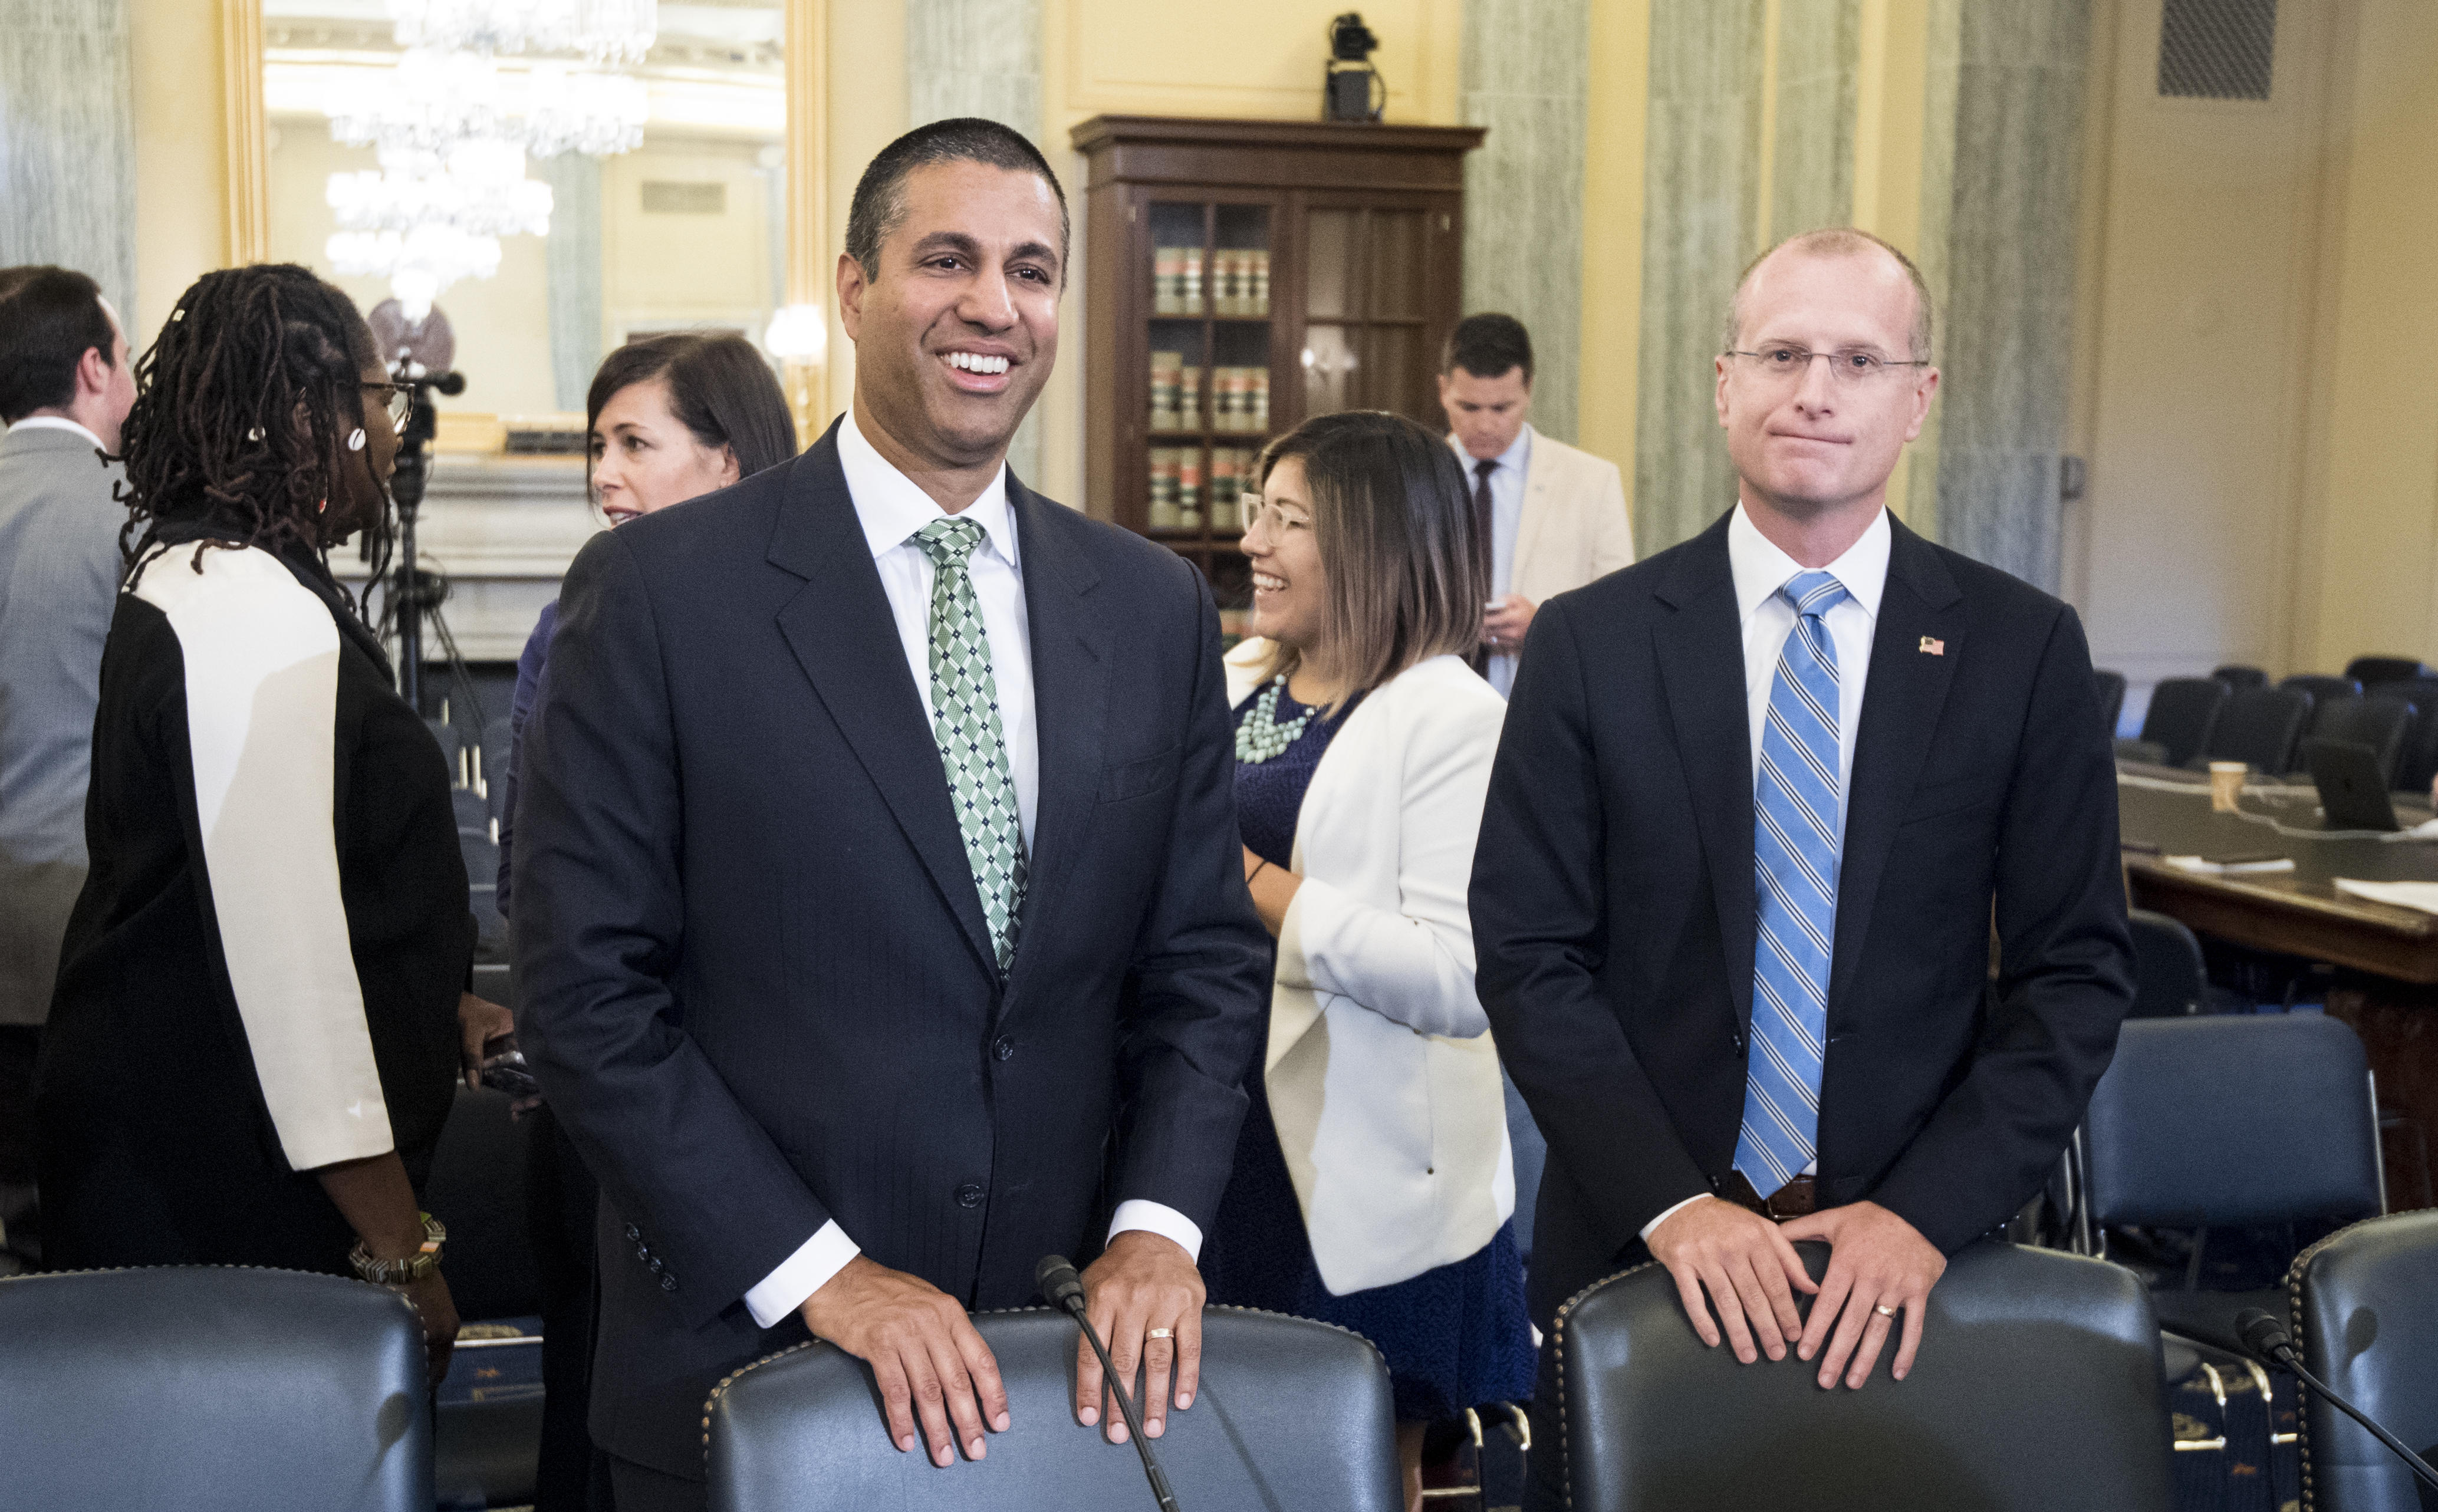 FCC Chairman Ajit Pai (left) and FCC Commissioner Brendan Carr talk before the start of the Senate Committee on Commerce, Science and Transportation hearing on Thursday.